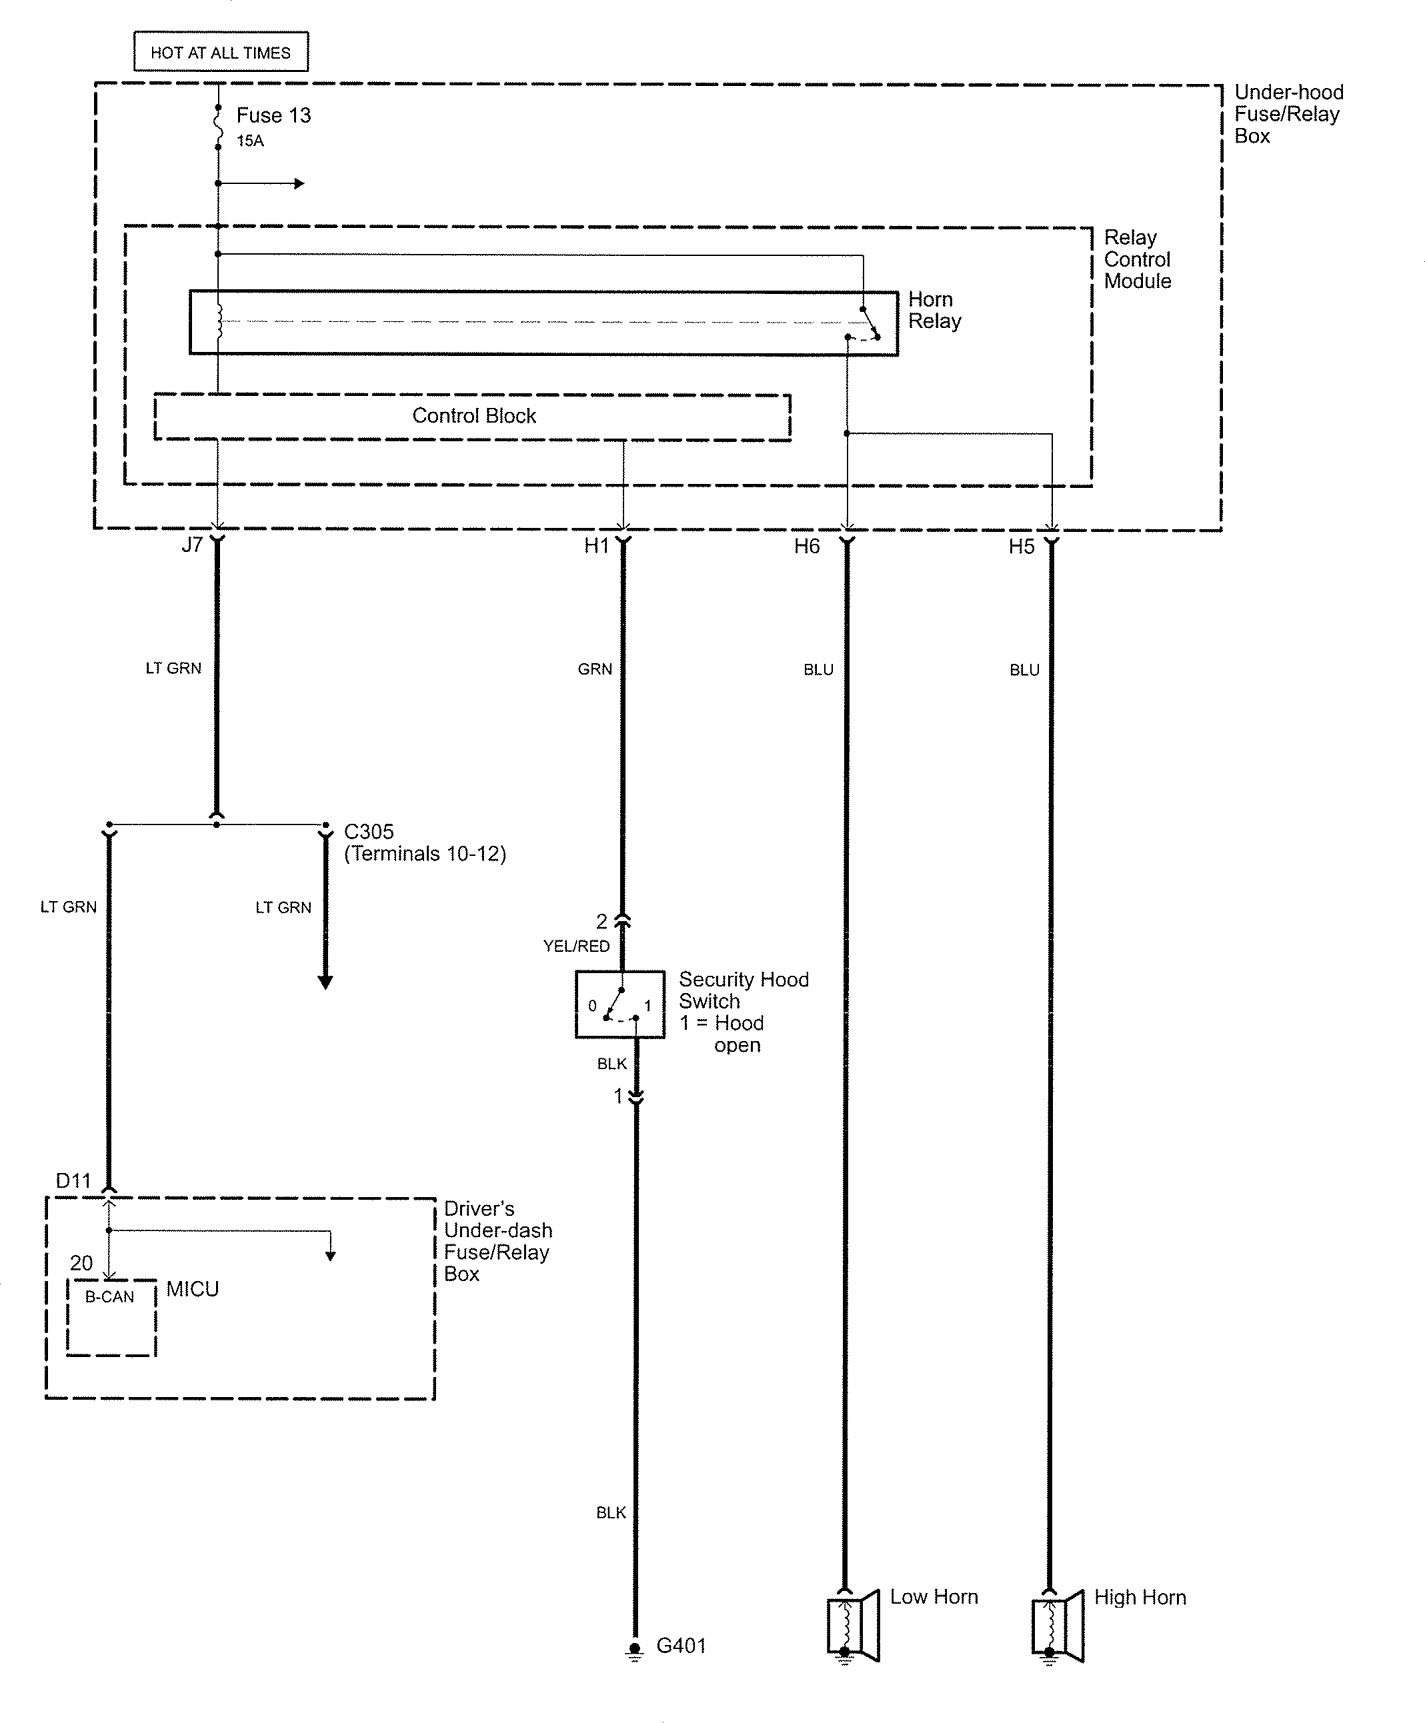 hight resolution of 2005 acura rl fuse box diagram 30 wiring diagram images 2005 acura rl fuse diagram 2005